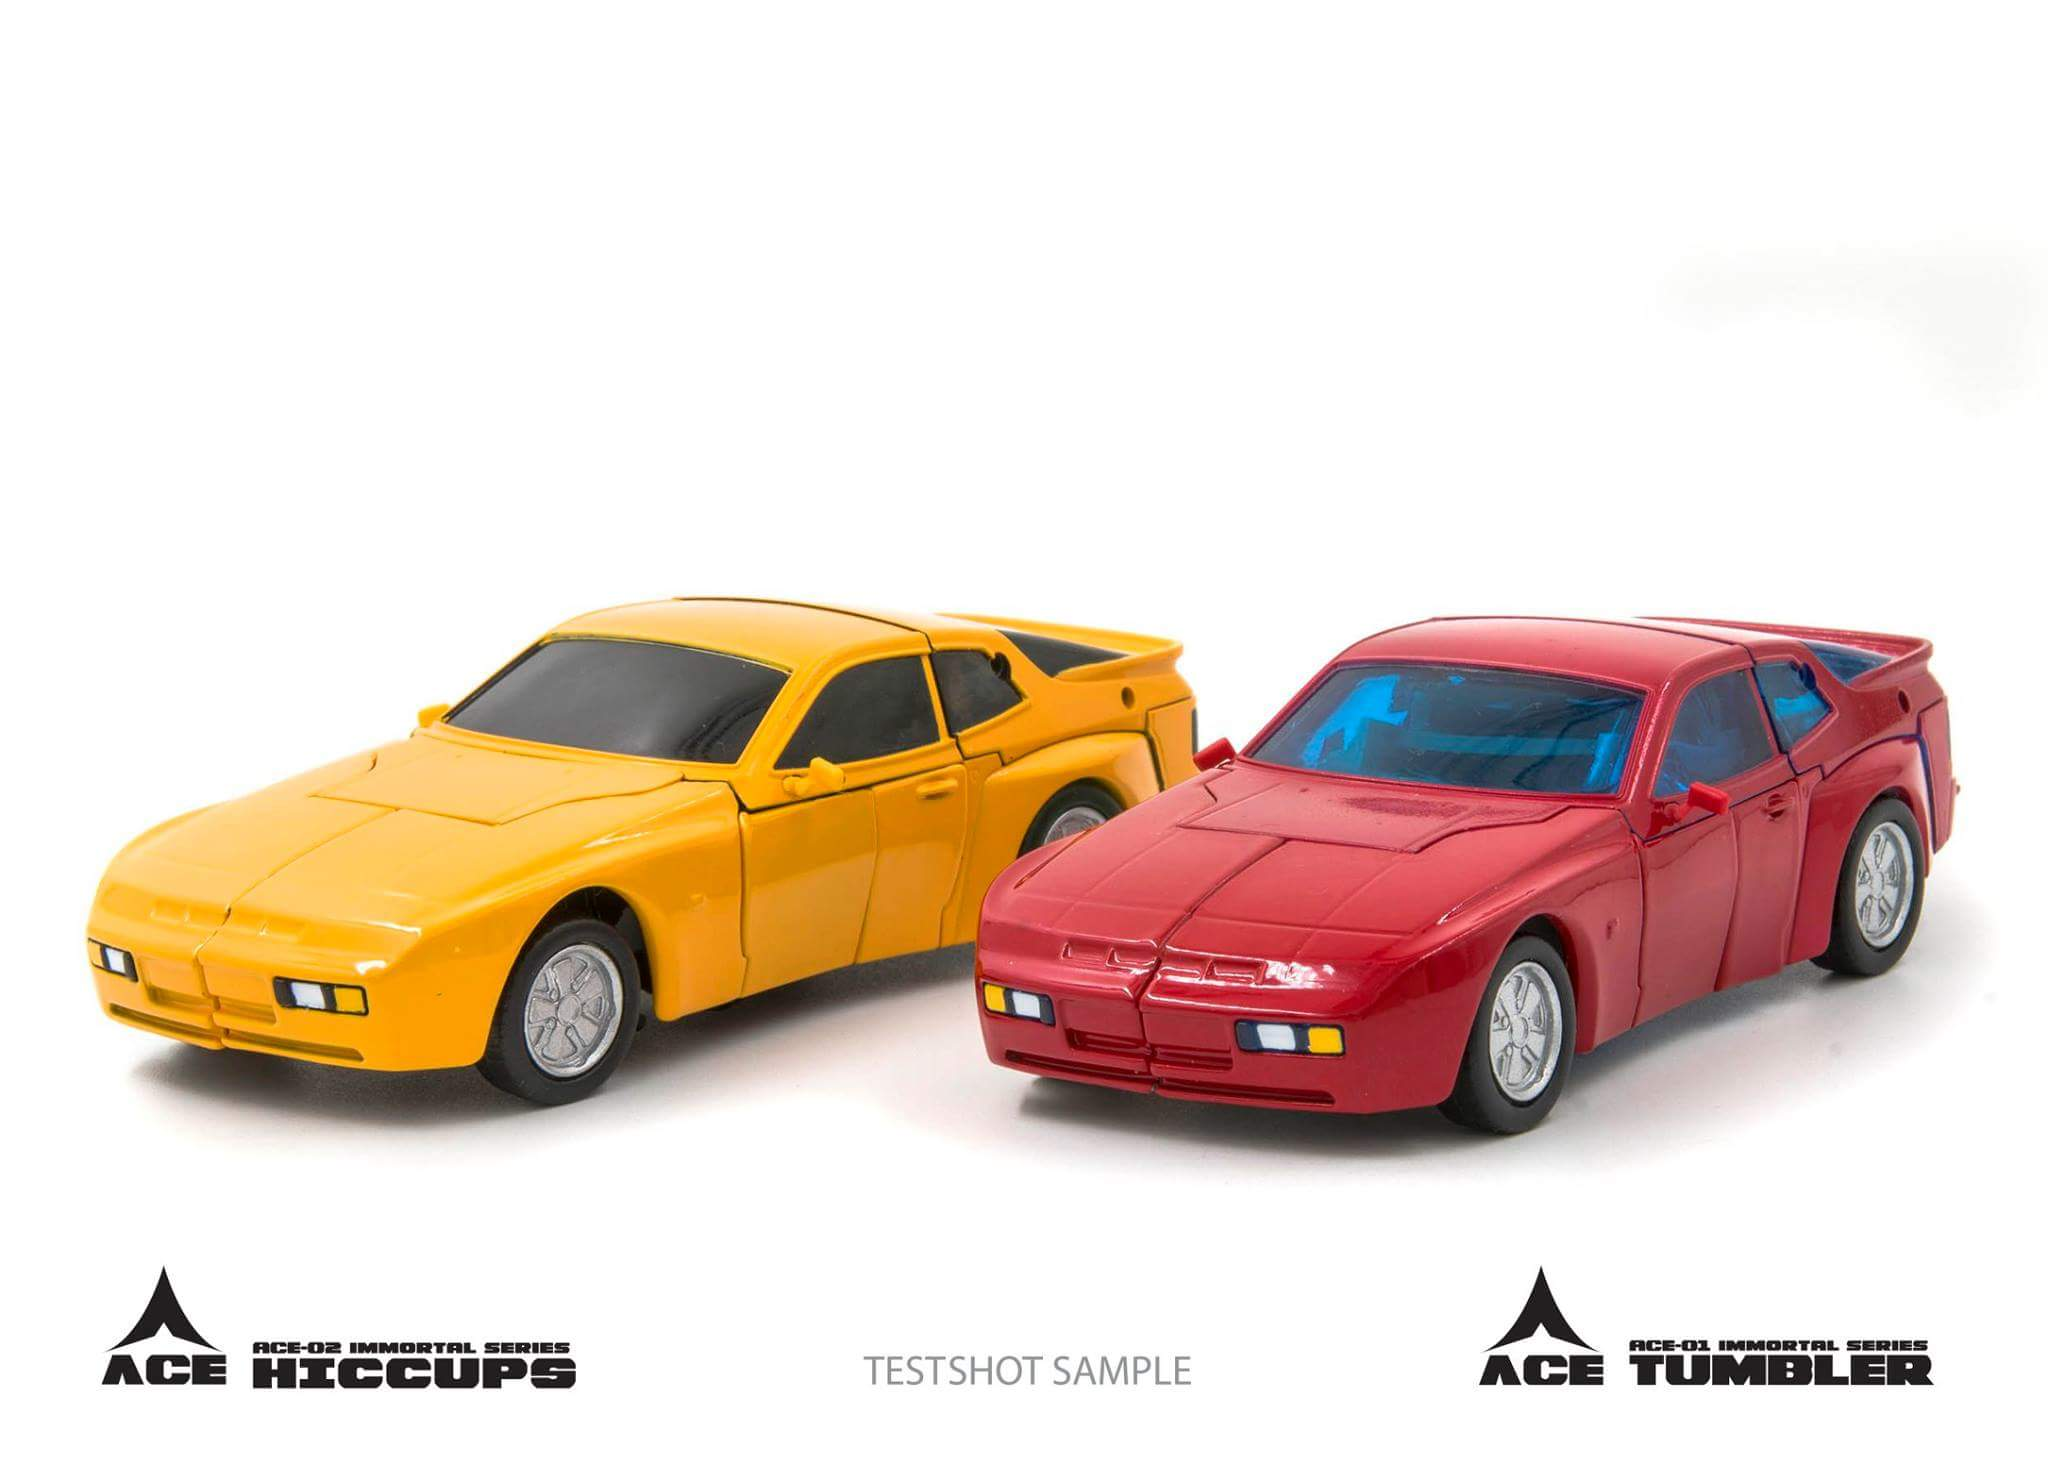 [ACE Collectables] Produit Tiers - Minibots MP - ACE-01 Tumbler (aka Cliffjumper/Matamore), ACE-02 Hiccups (aka Hubcap/Virevolto), ACE-03 Trident (aka Seaspray/Embruns) VY1tsm5o